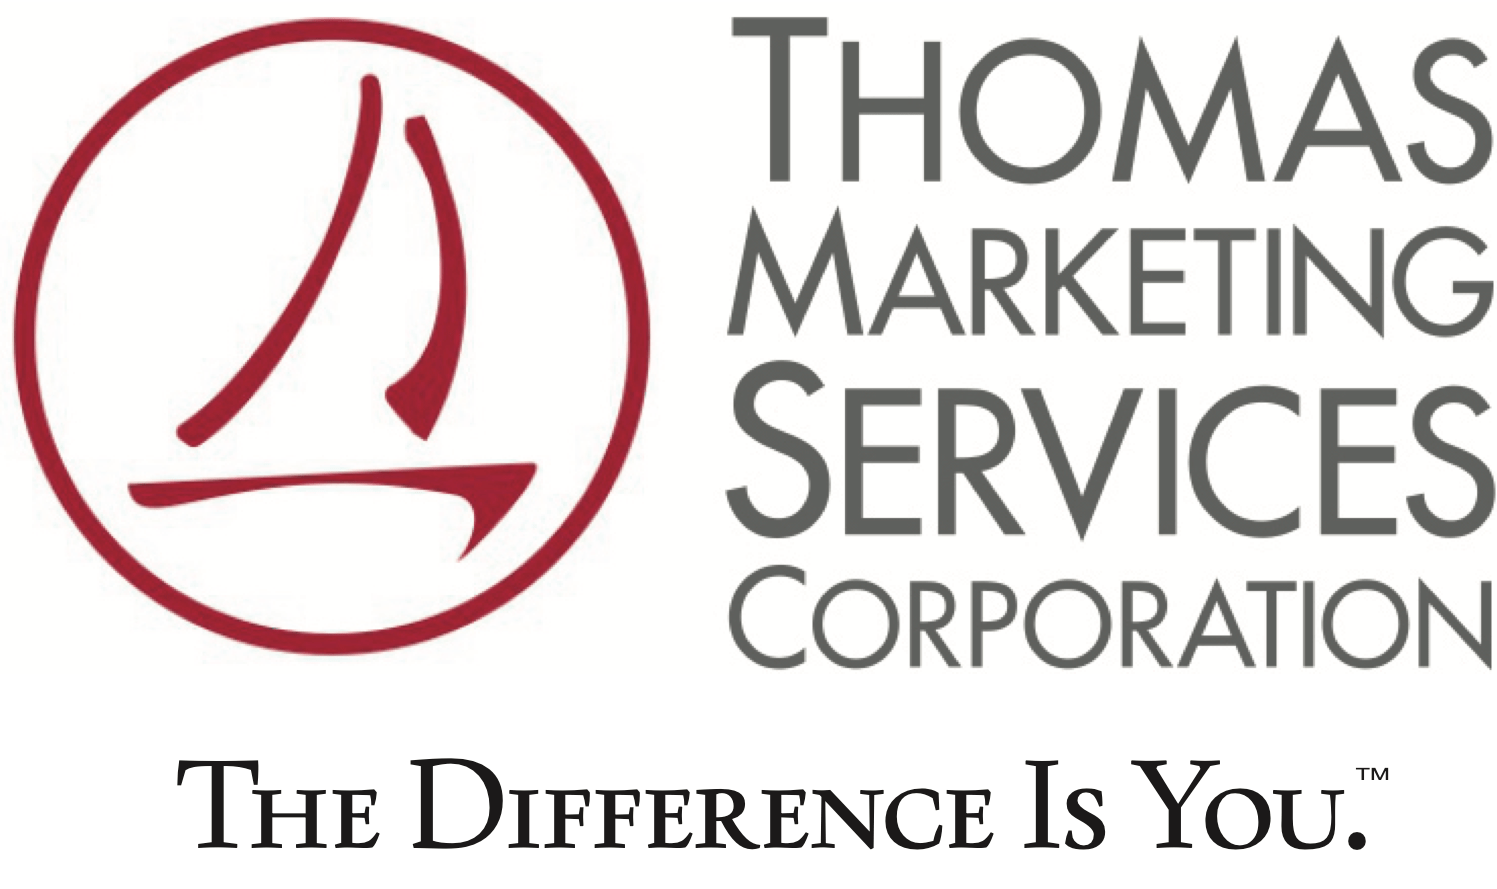 Thomas Marketing Services